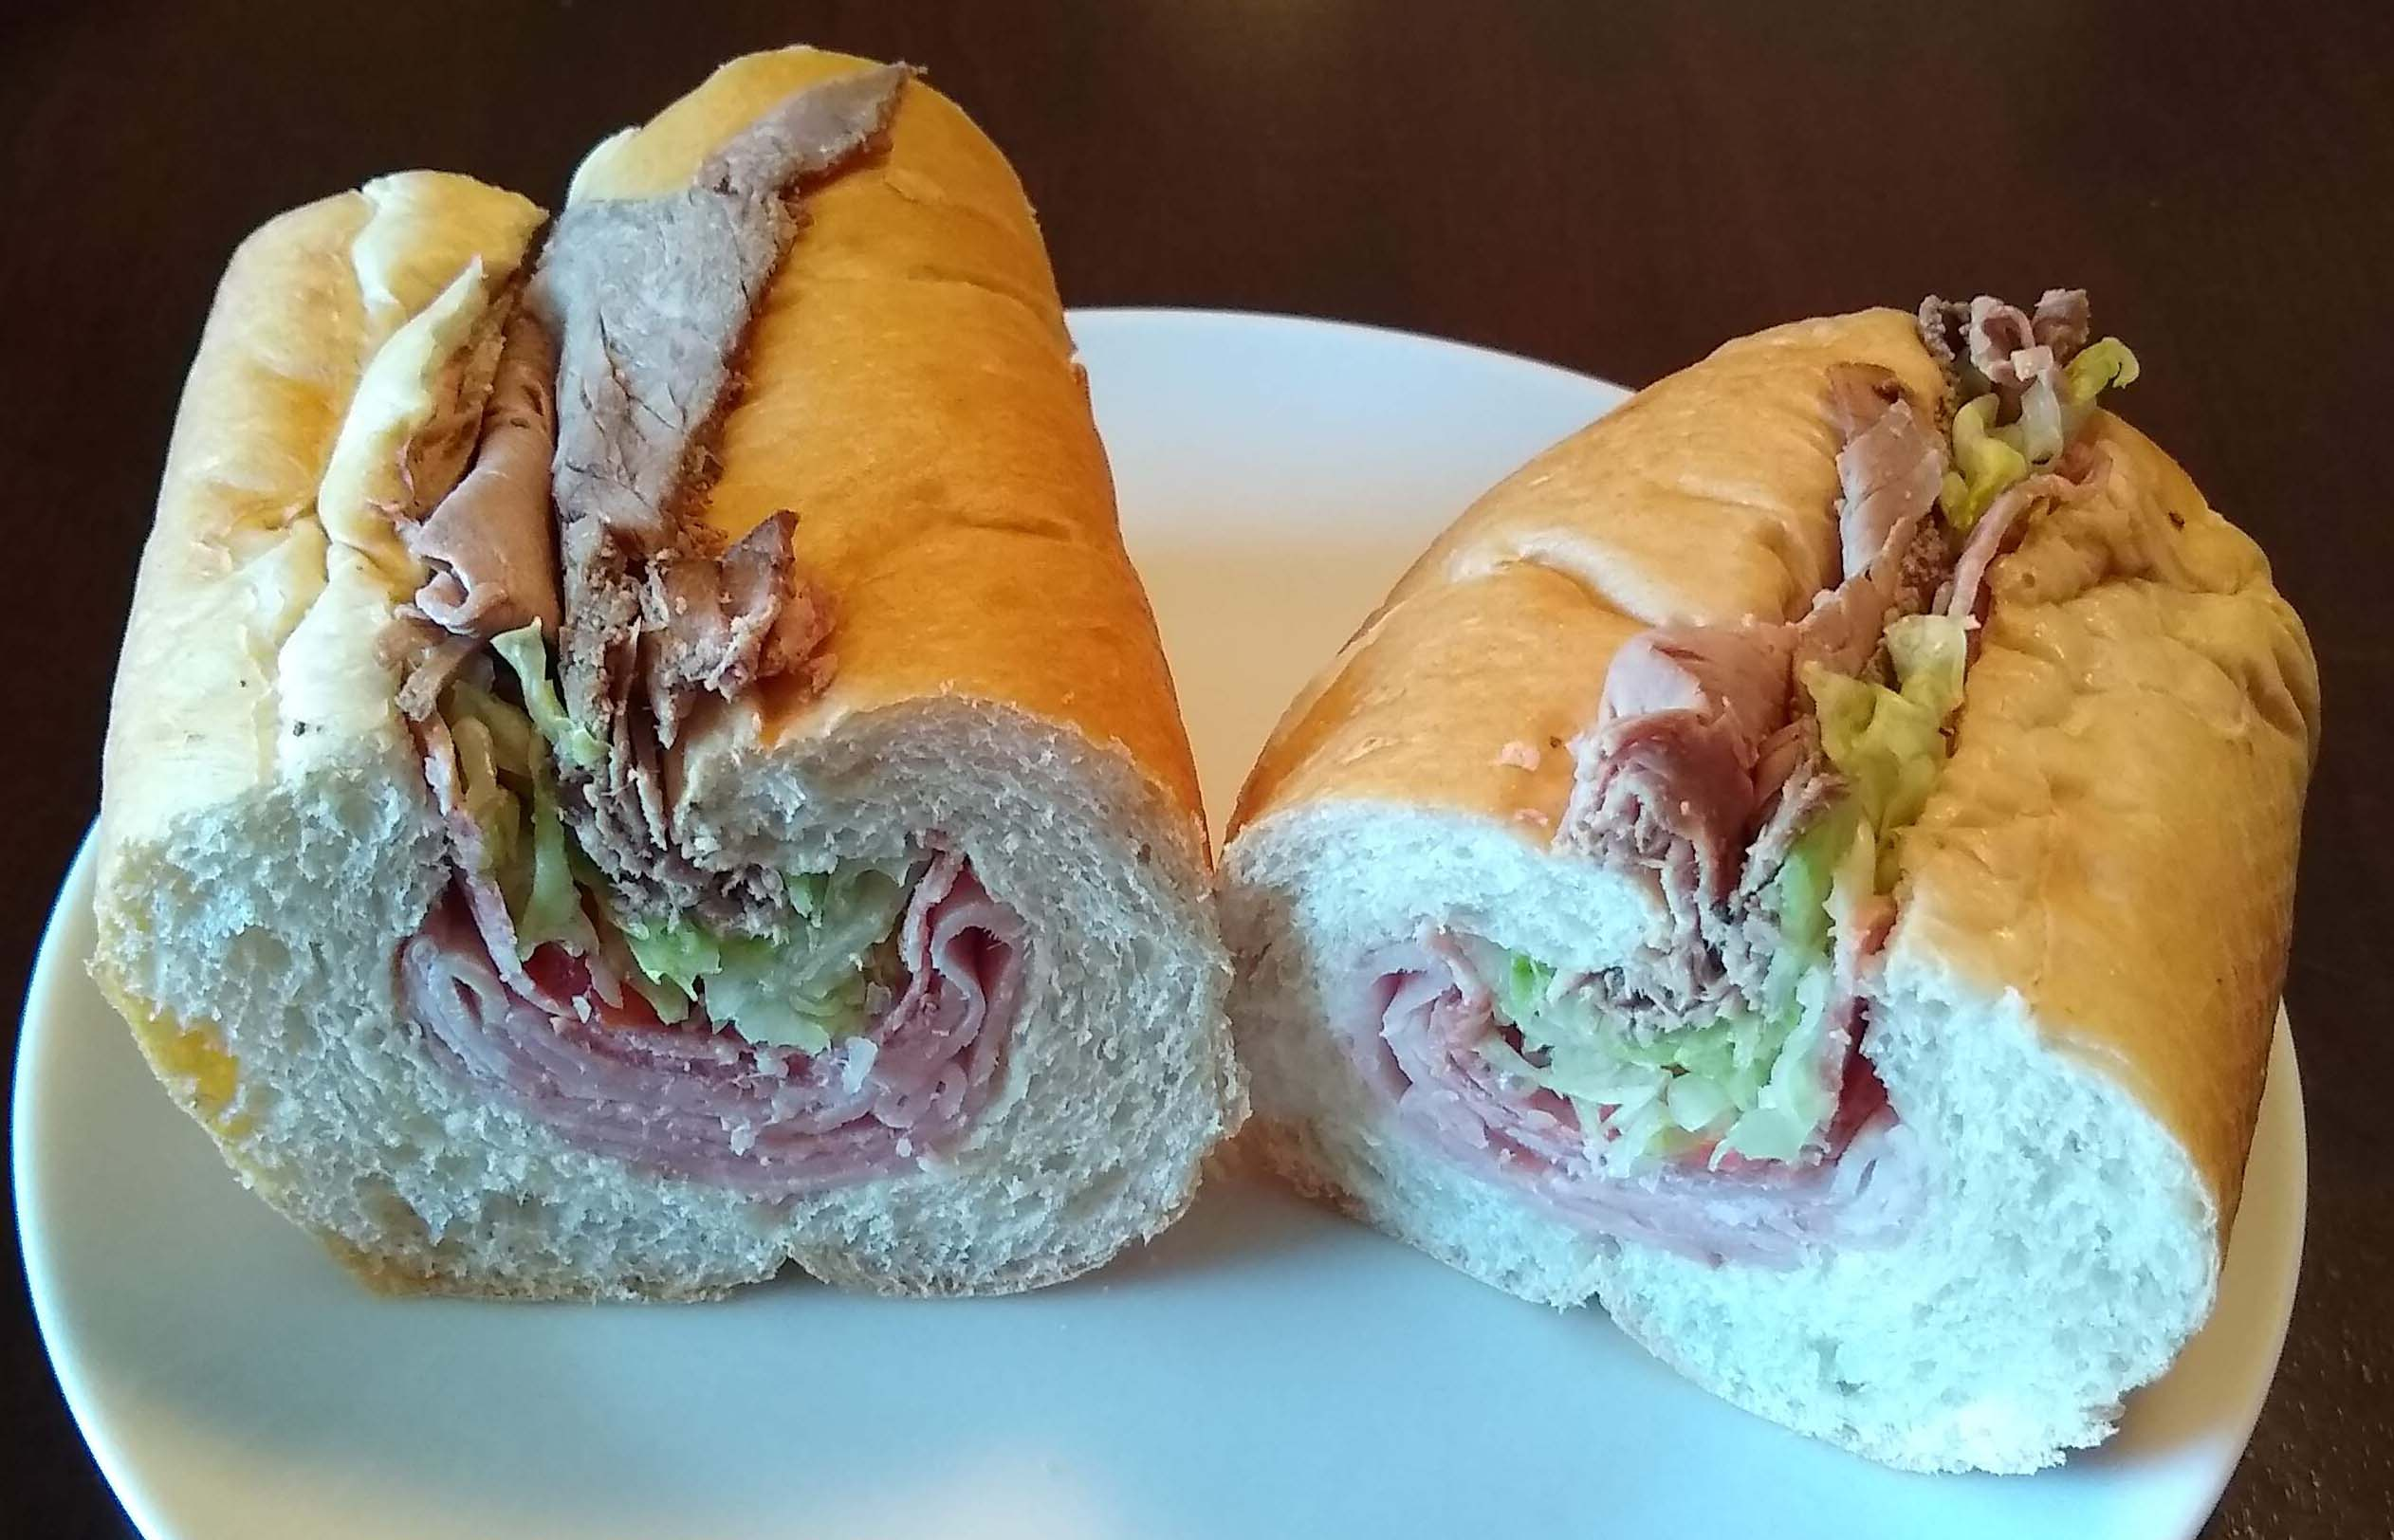 Taste of the Big Apple: Alicea's deli offers outstanding bagels, New York-style subs